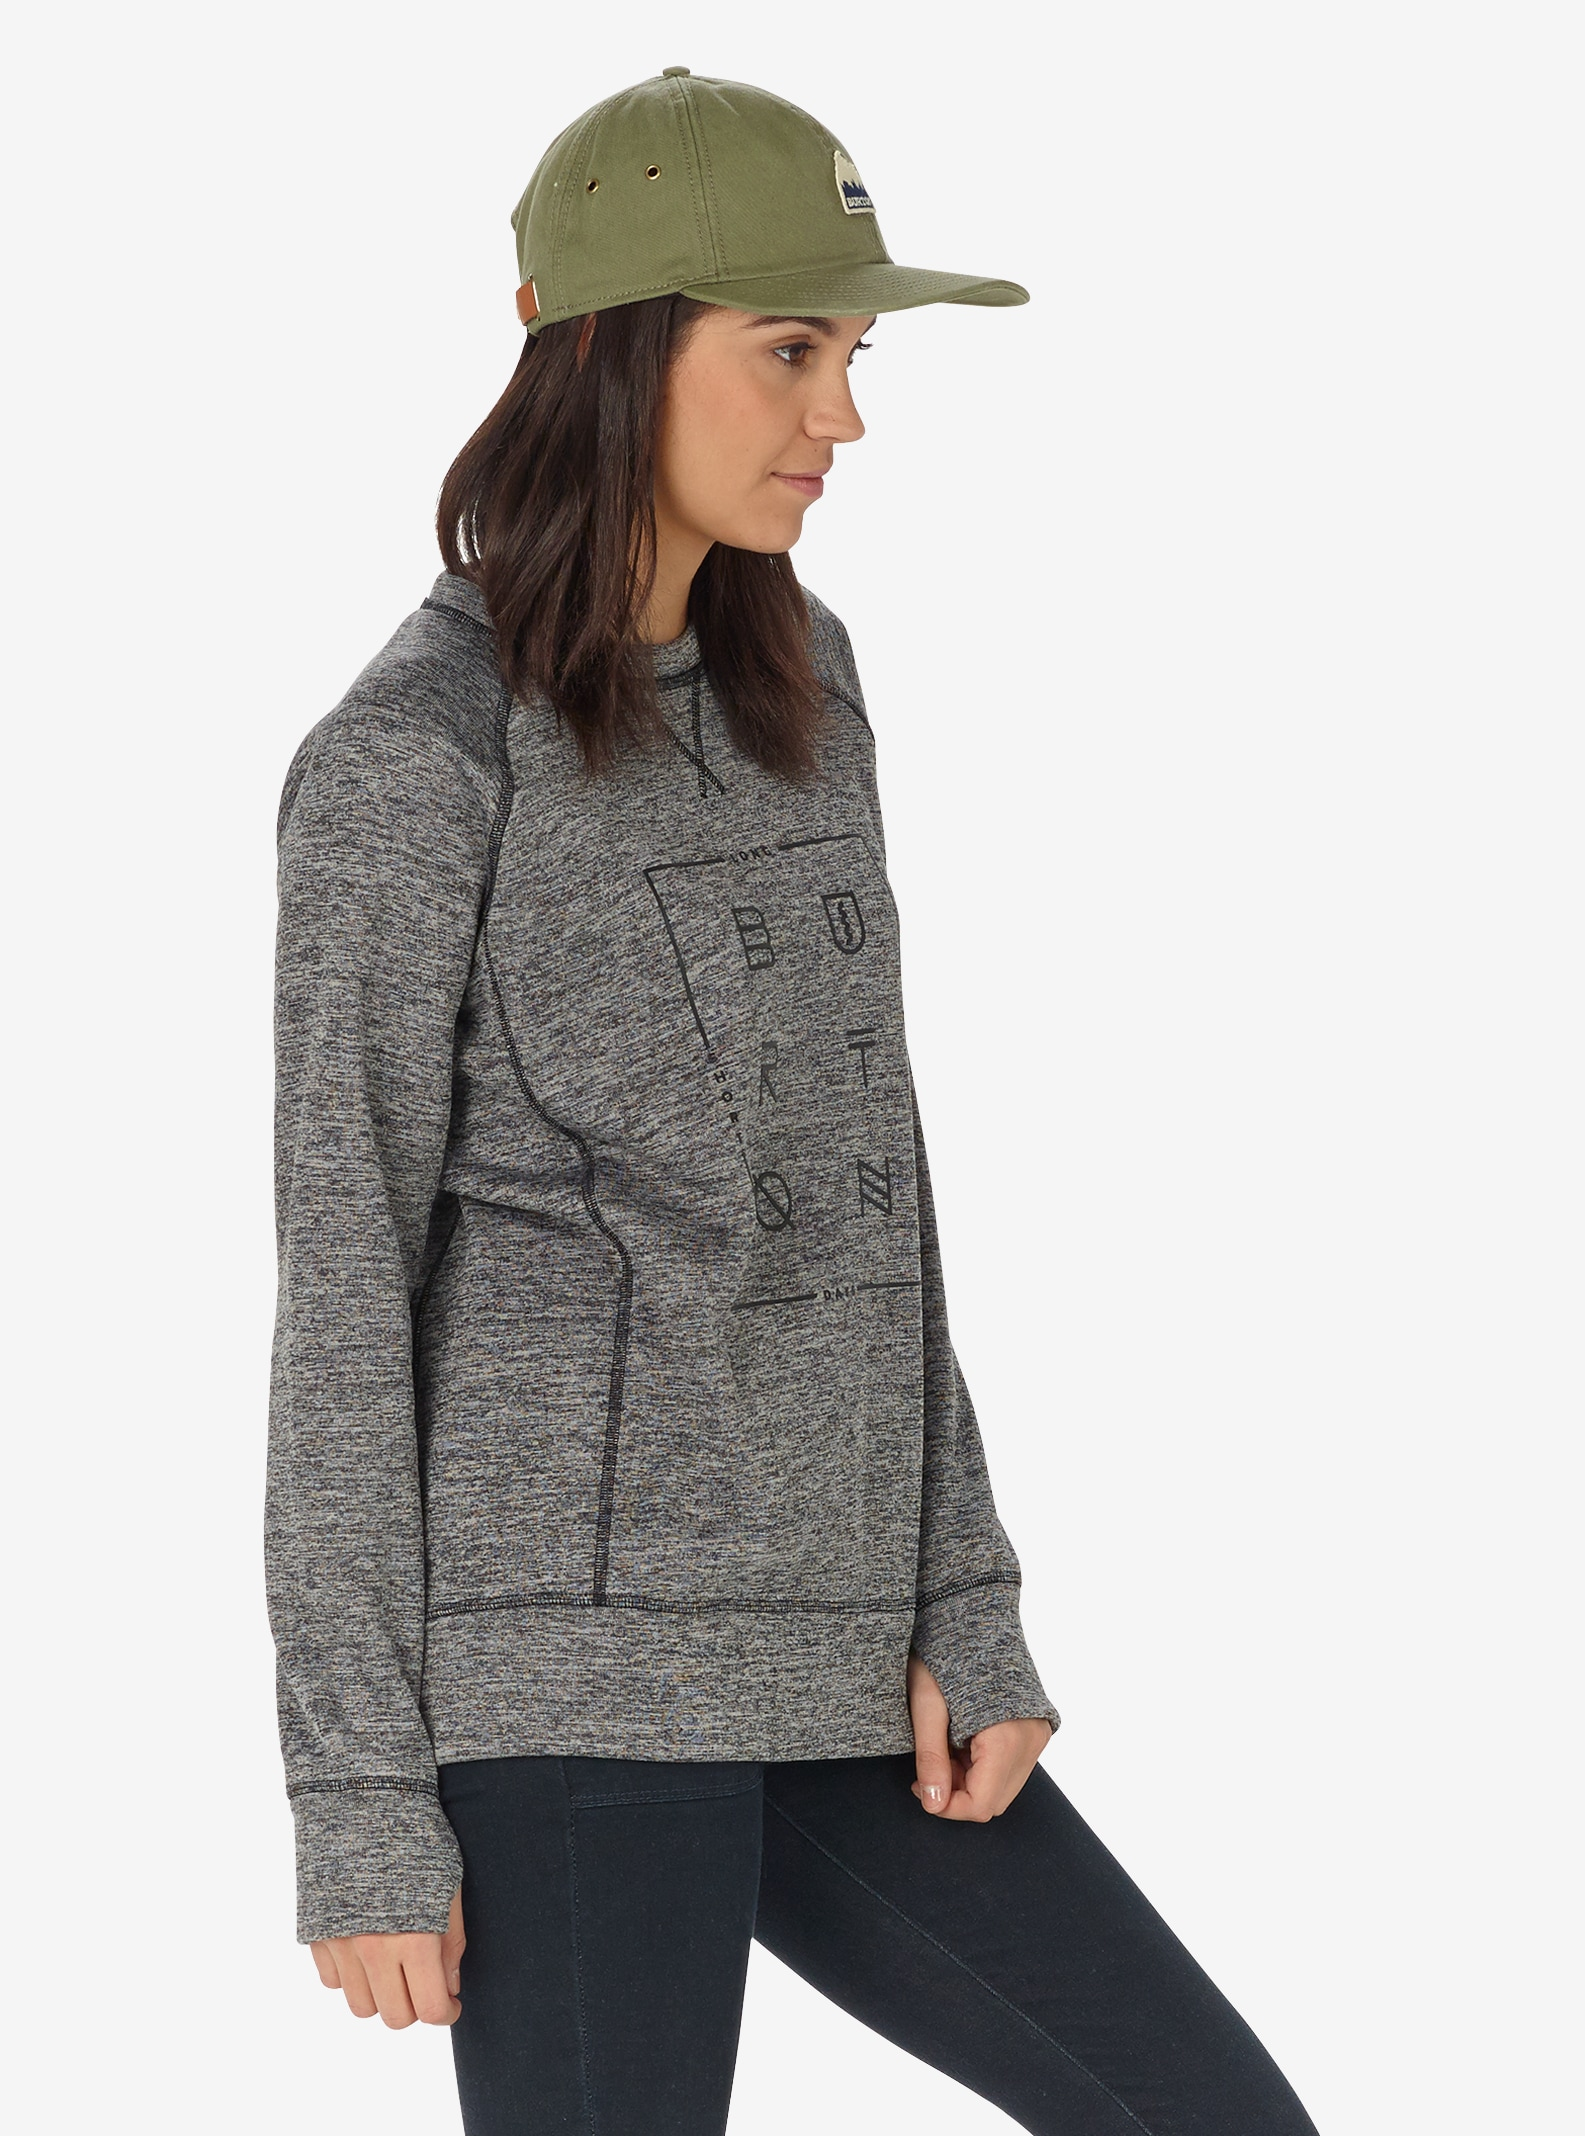 Women's Burton Quartz Crew shown in True Black Heather